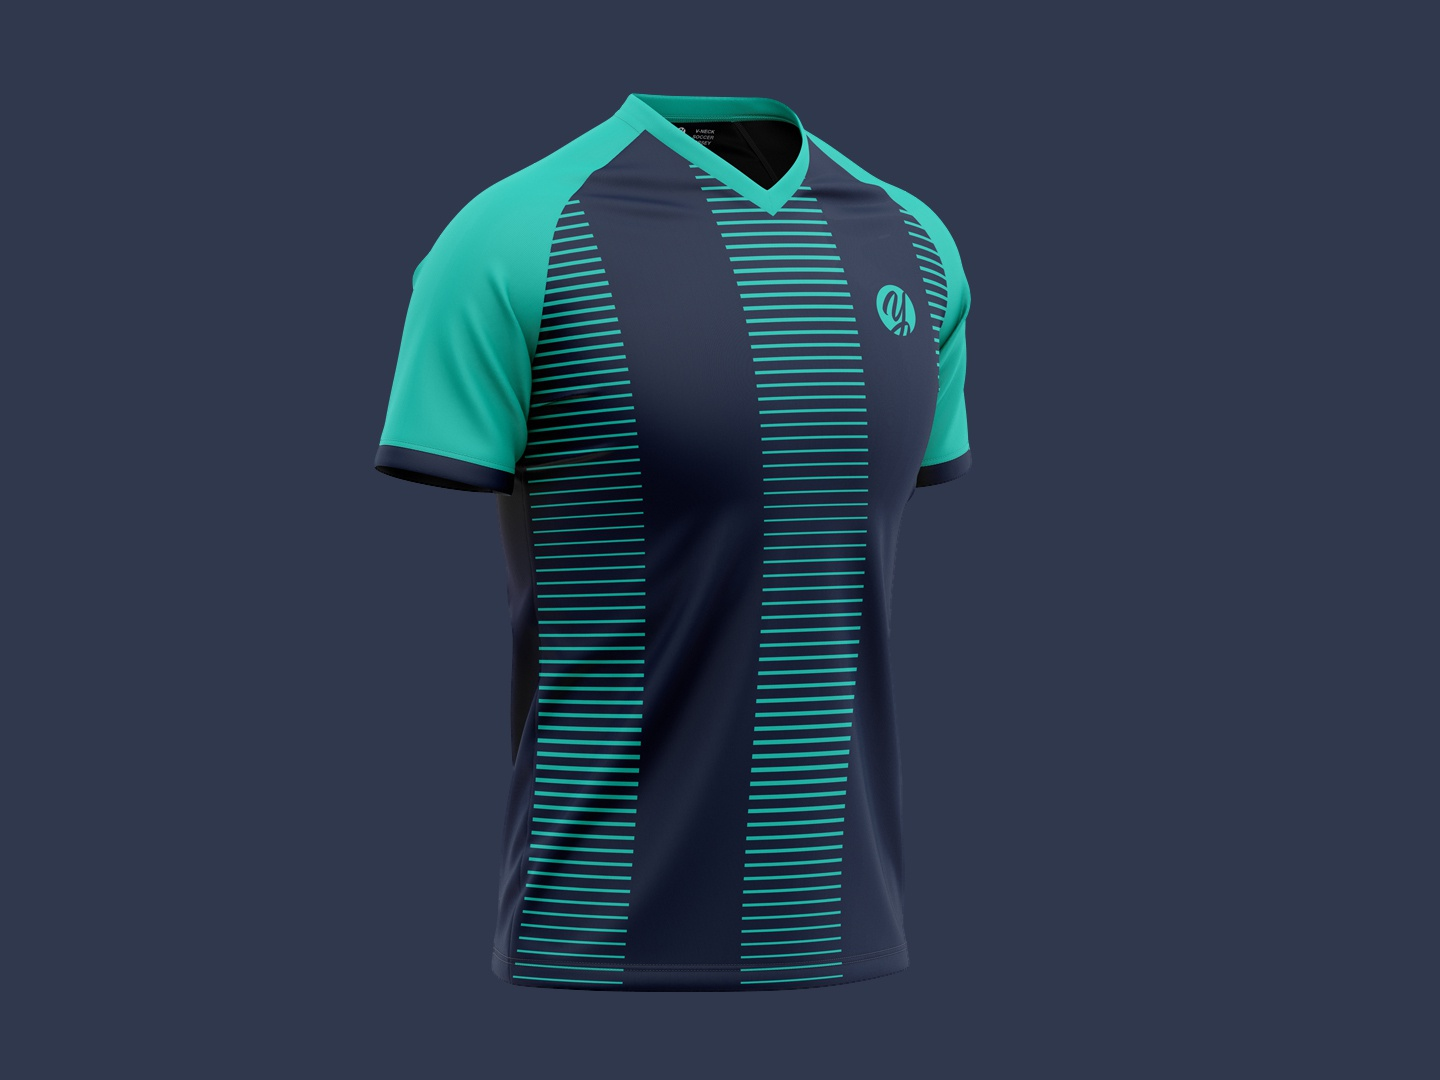 Soccer Raglan Jersey Mockup By Cg Tailor On Dribbble